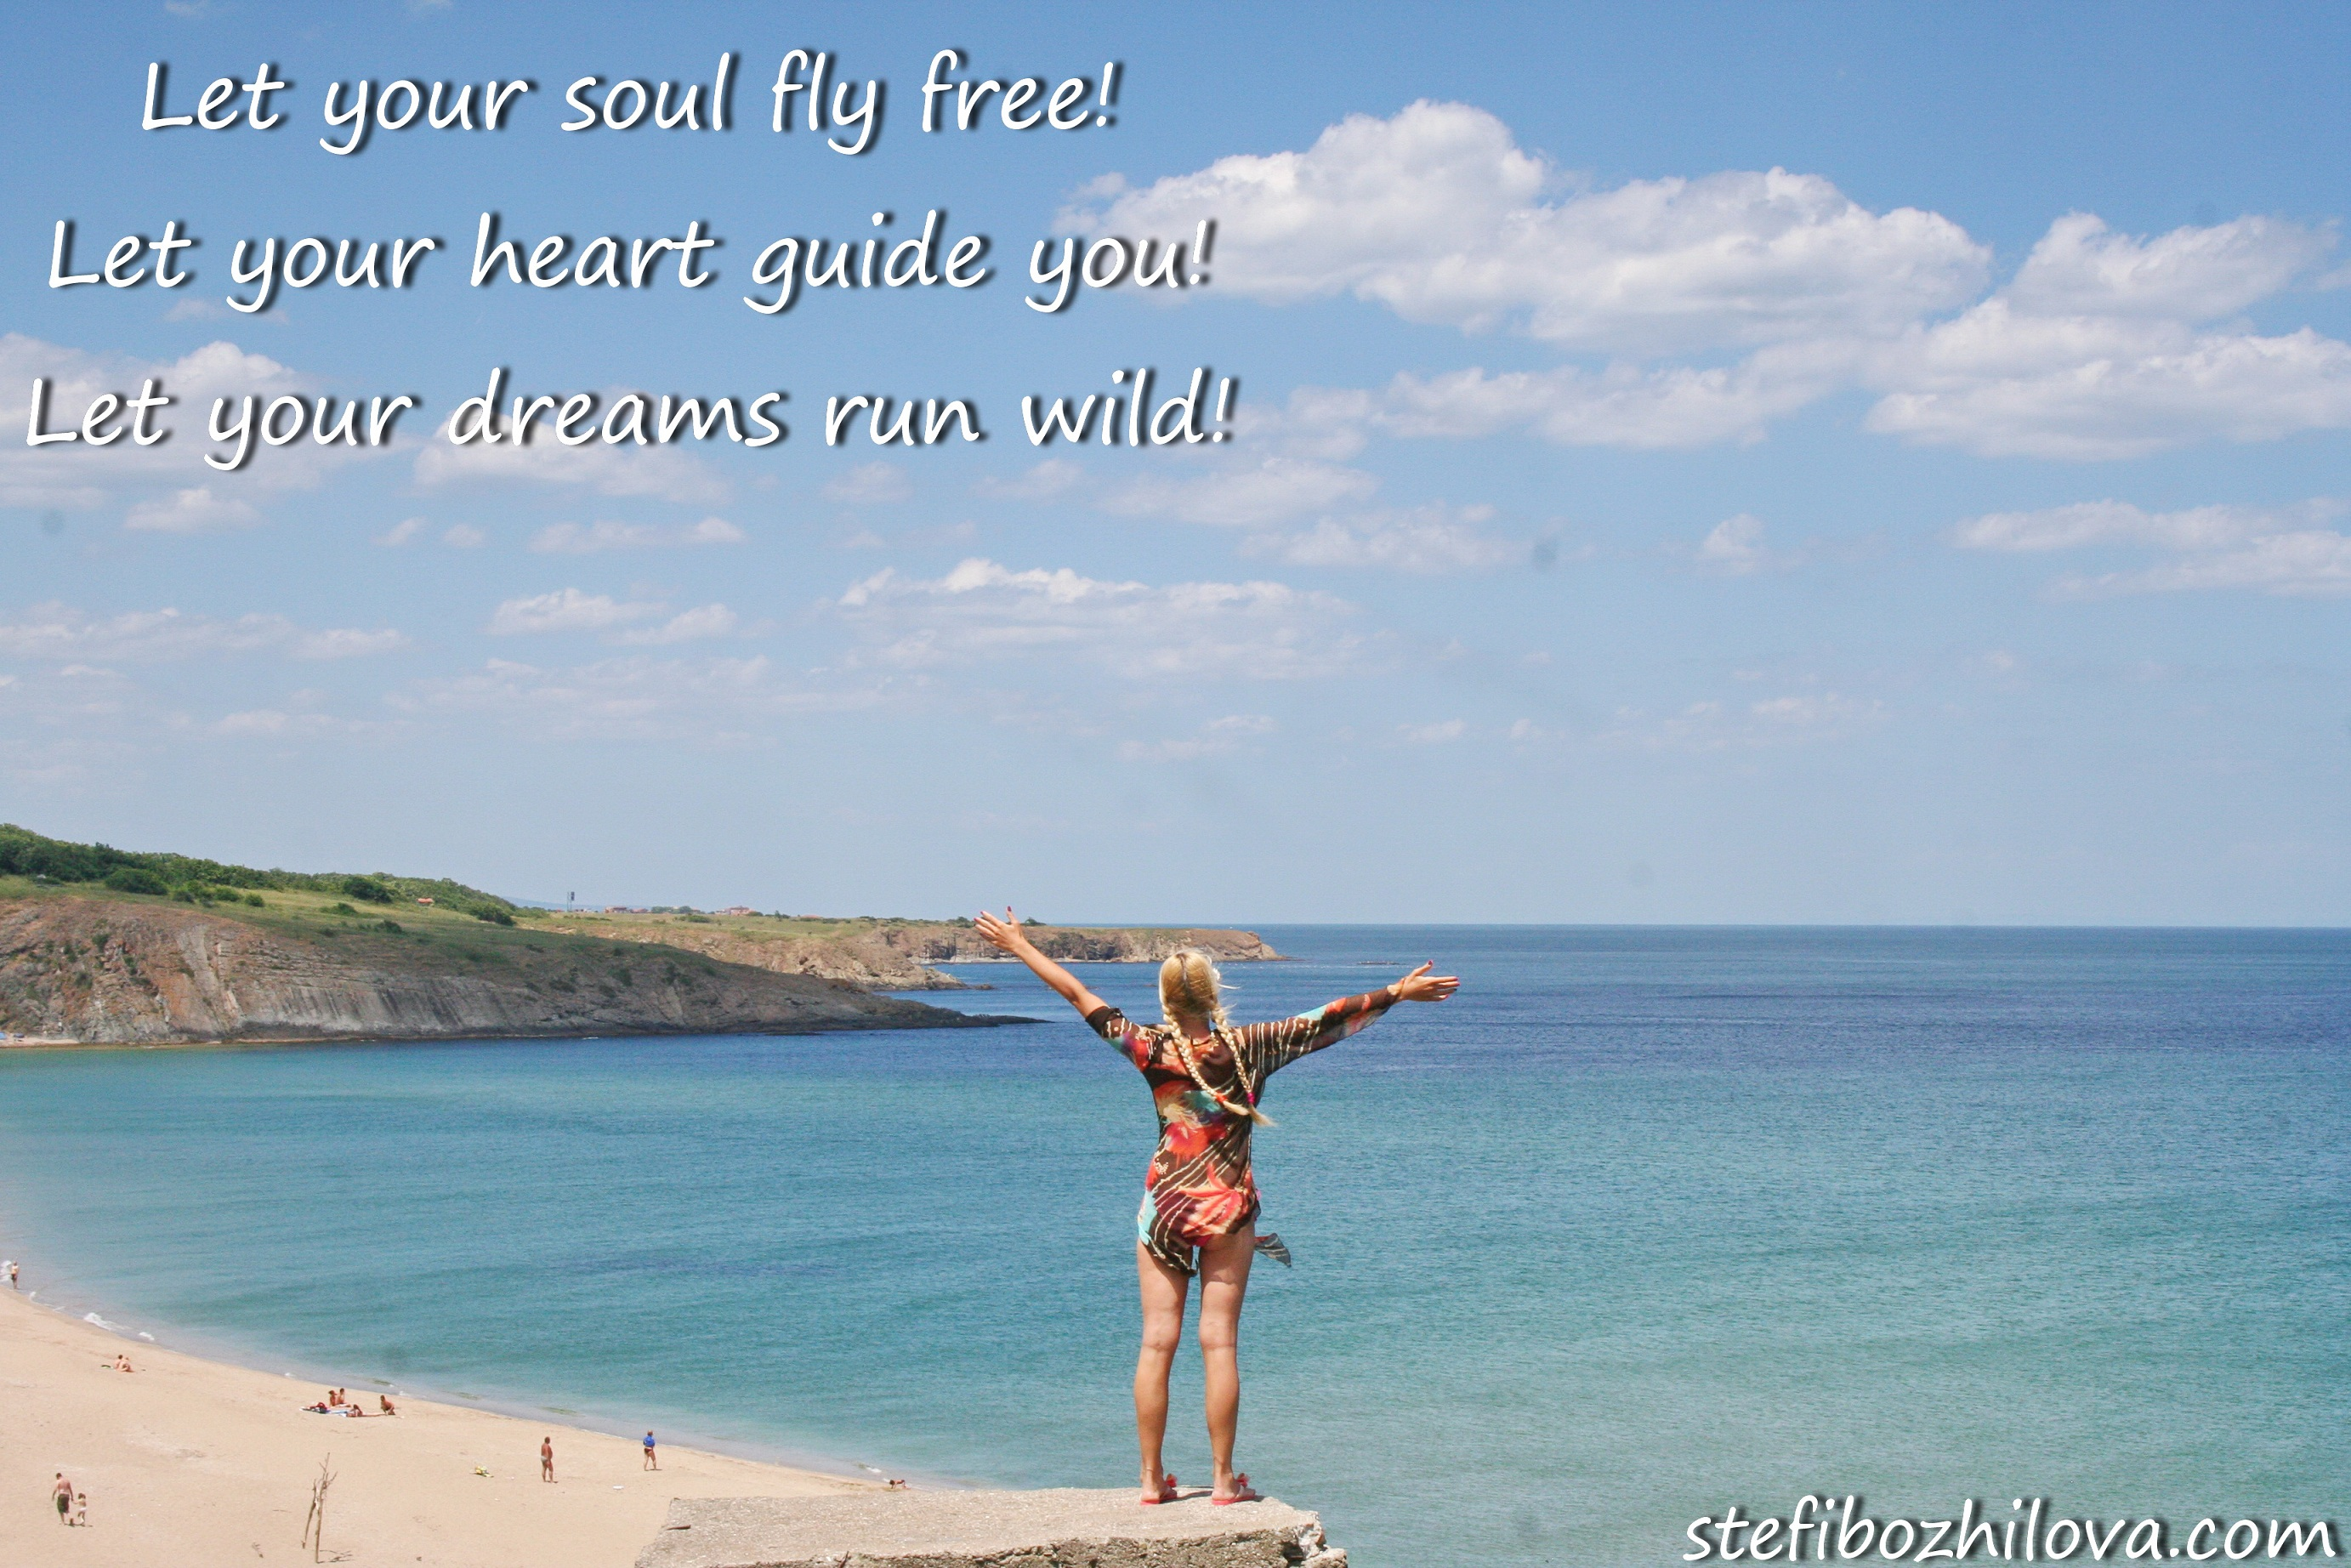 Let your soul fly free!